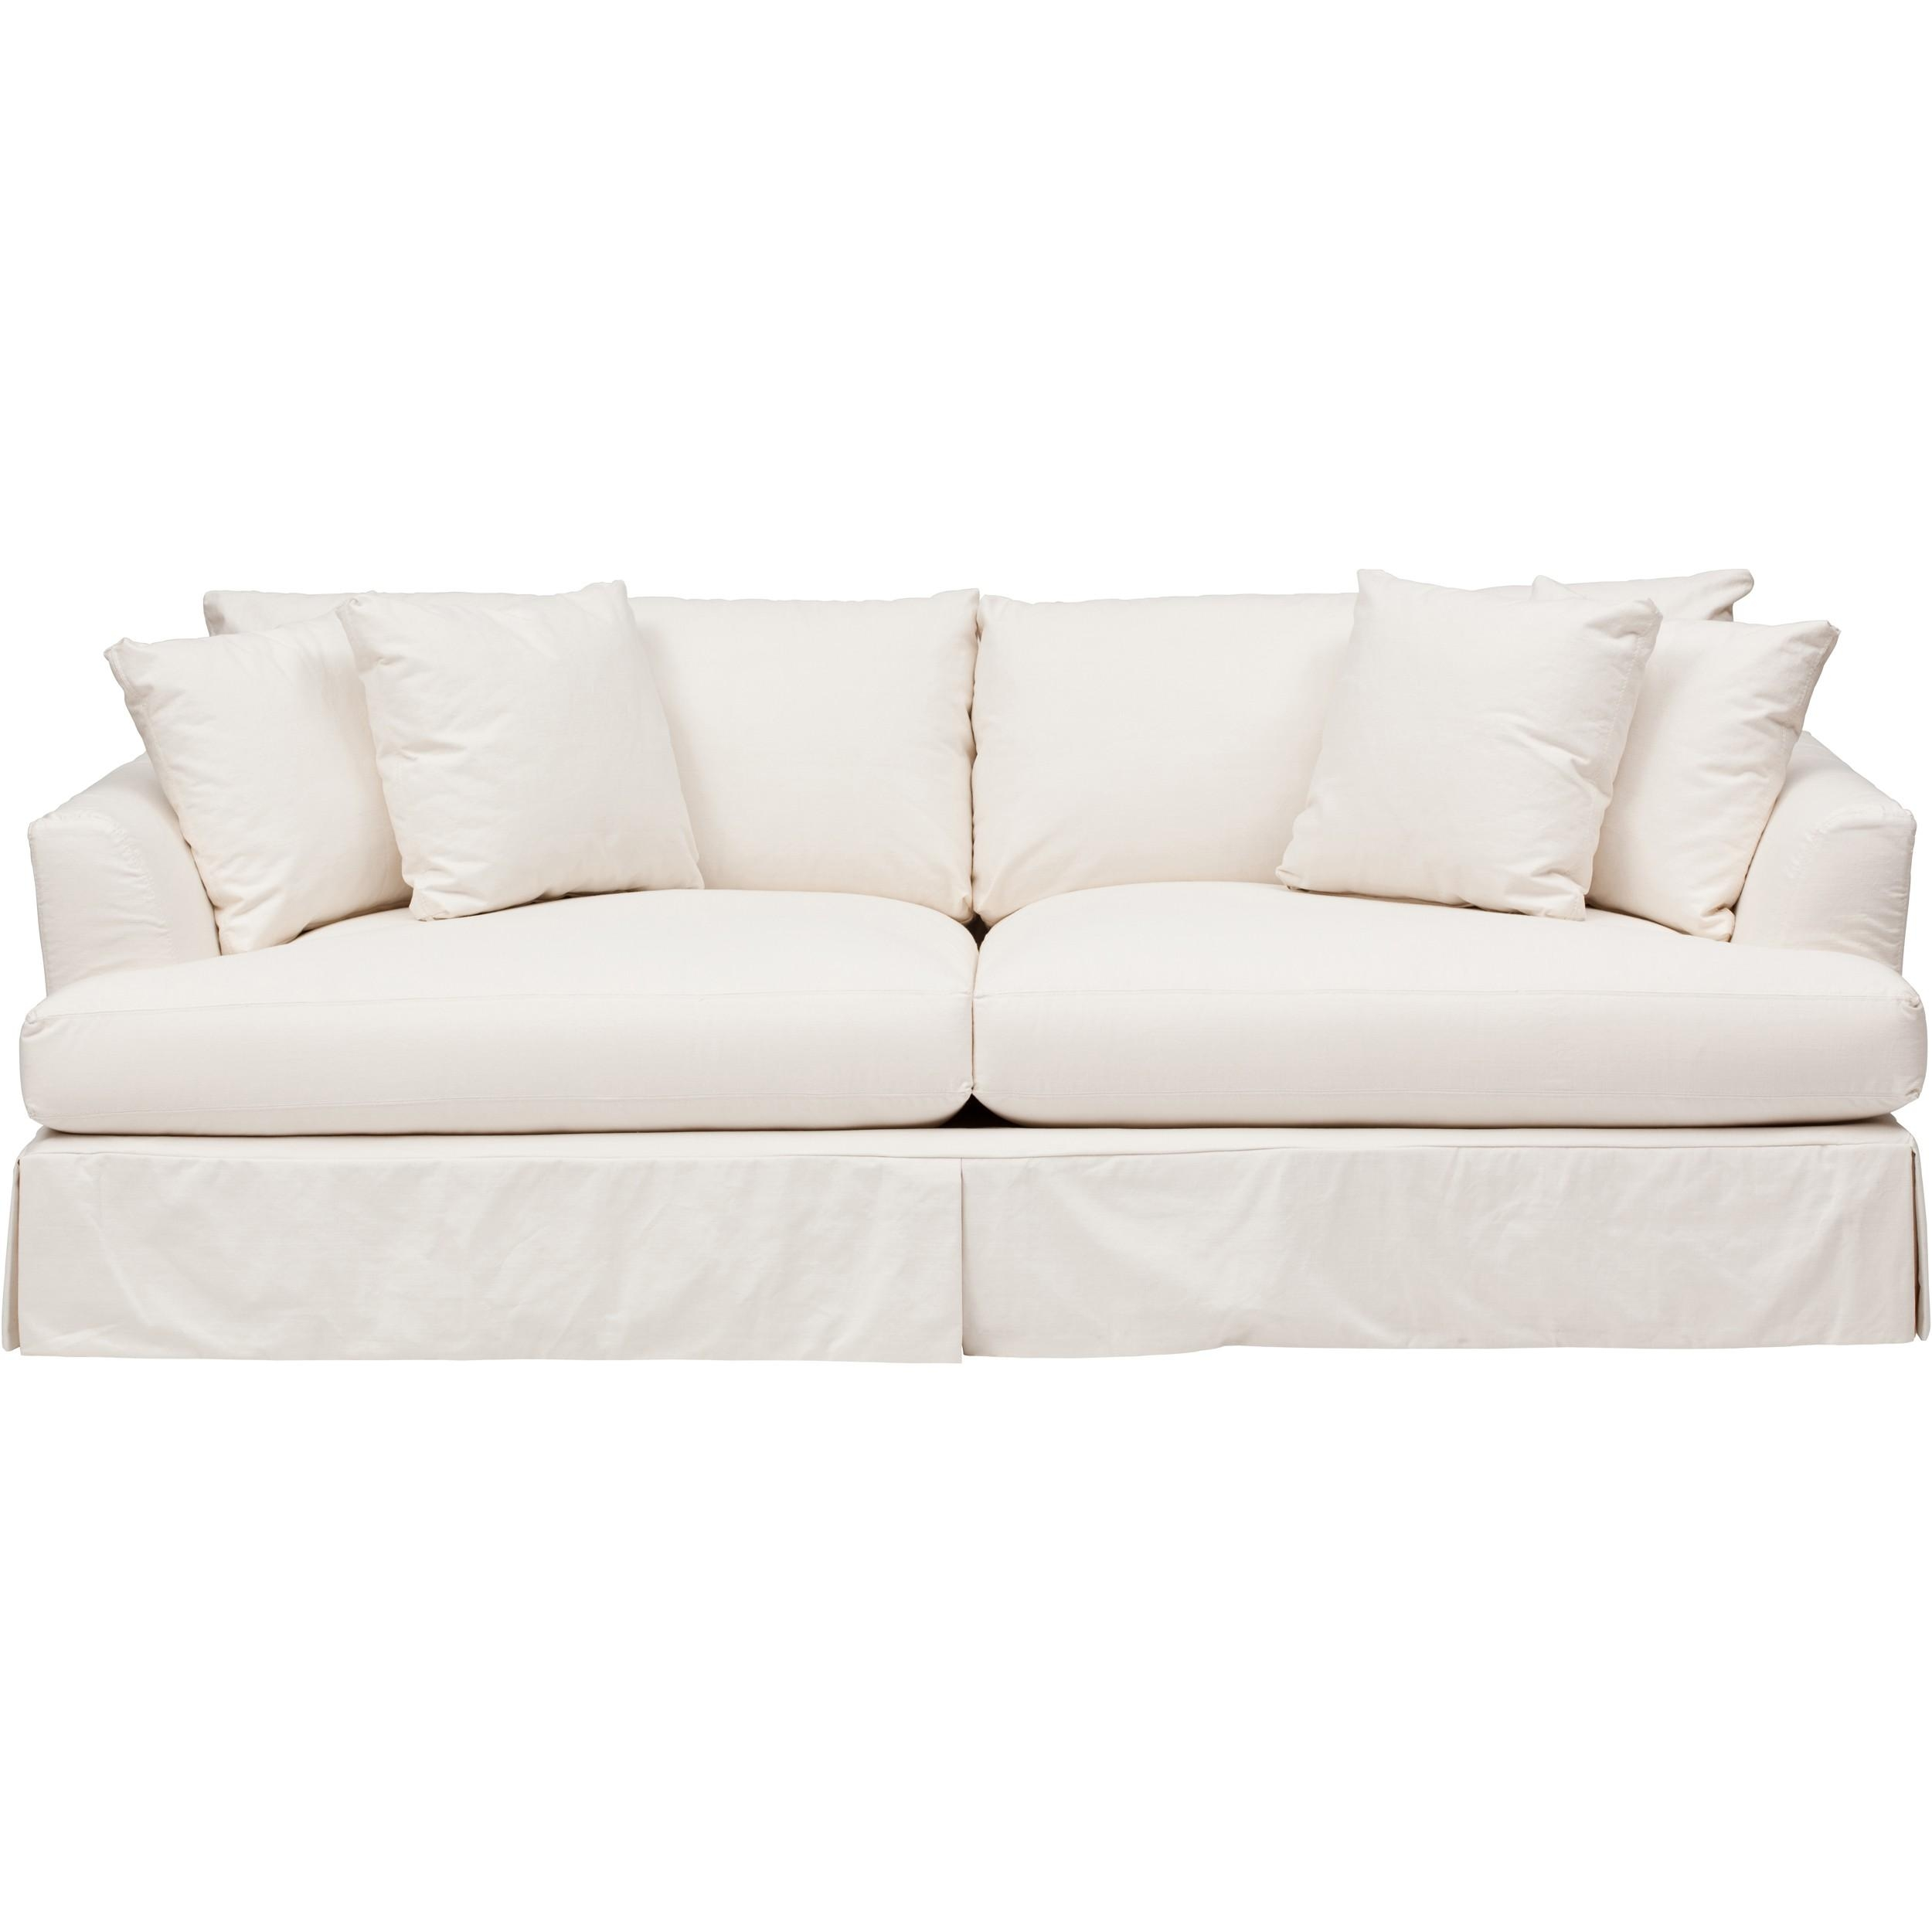 Furniture: Have Fun Changing The Look And Feel With Sofa Inside Slipcovers Sofas (Image 7 of 20)